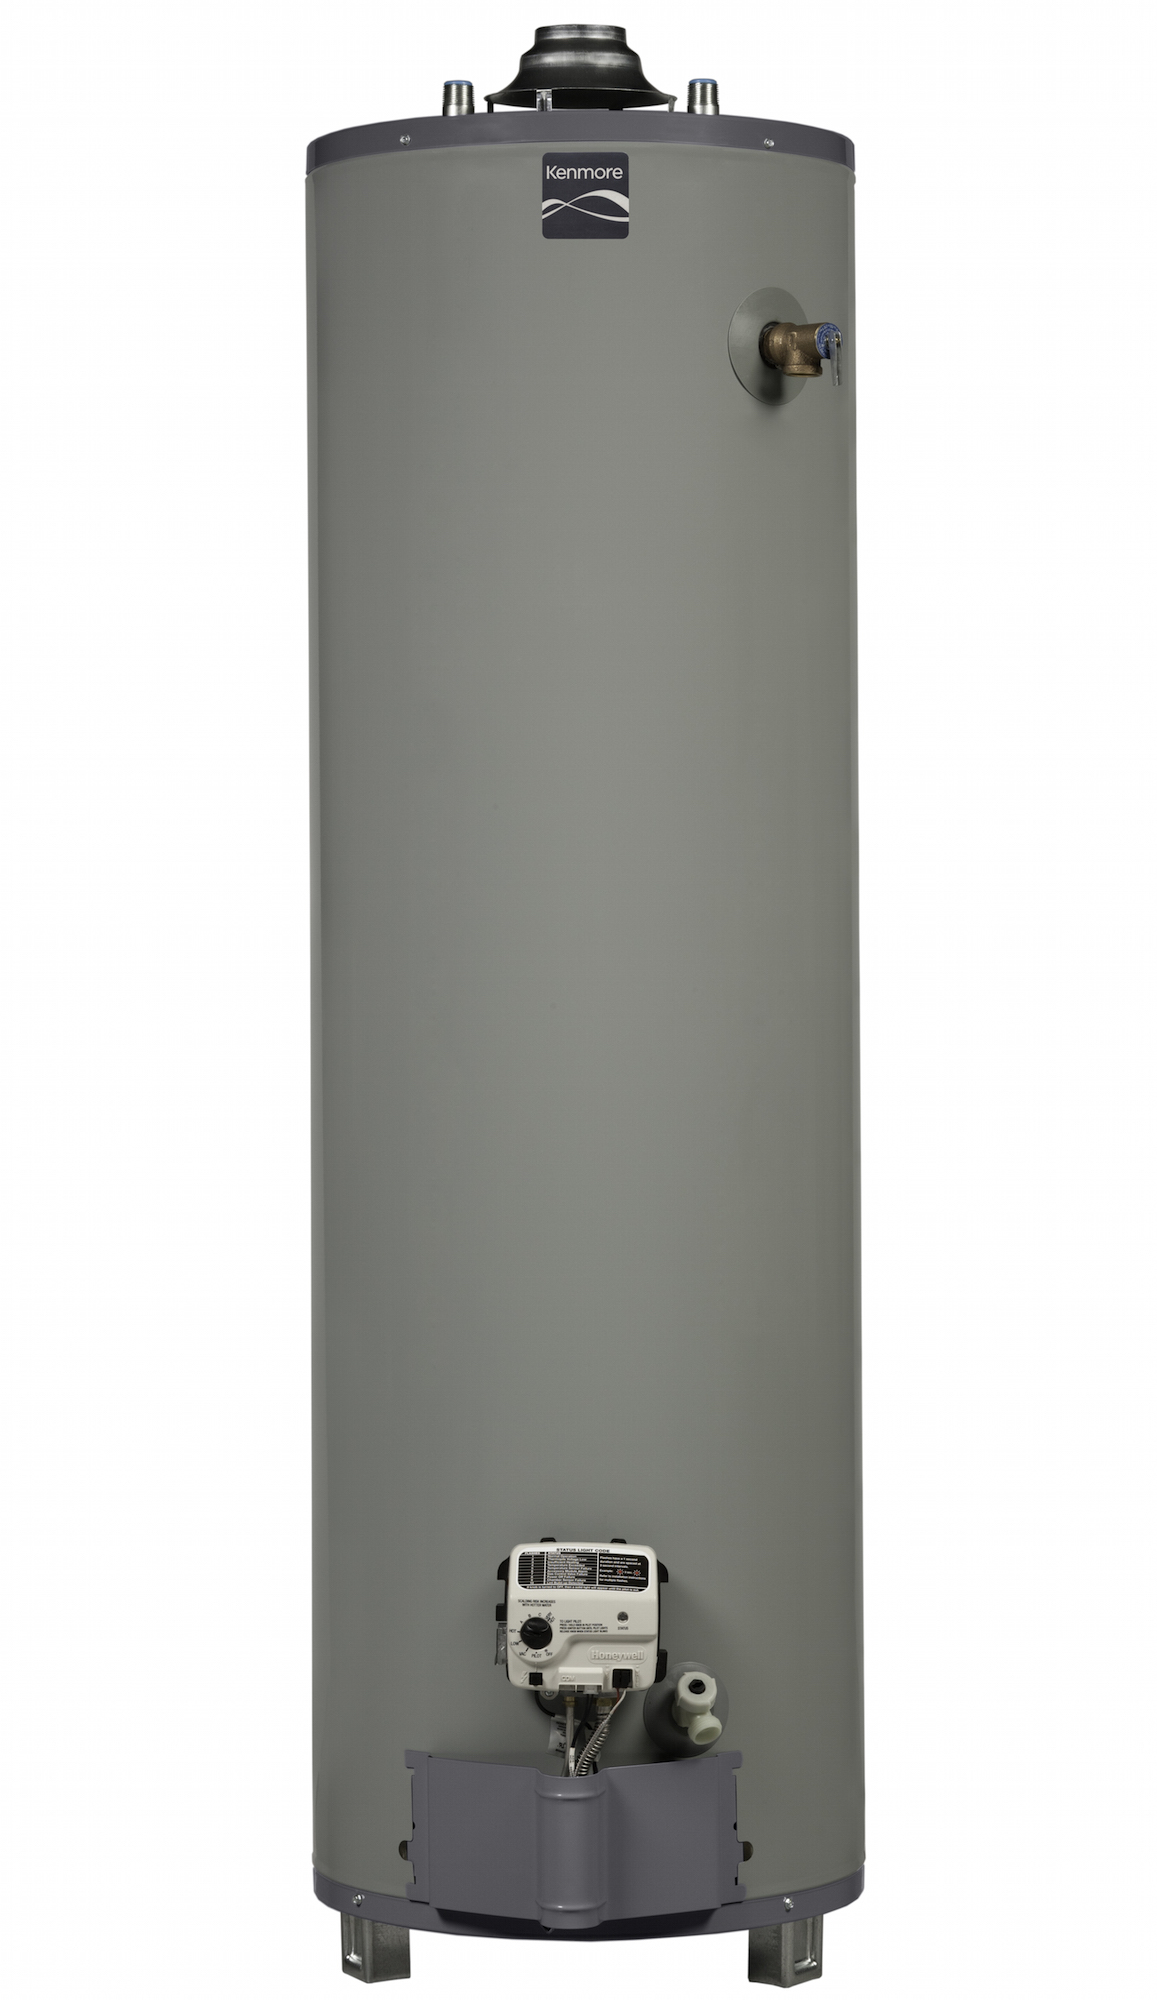 Kenmore 55940 40 gal. 9-Year Tall Natural Gas Ultra Low NOx Water Heater (Select California Markets) PartNumber: 04255940000P KsnValue: 7833952 MfgPartNumber: 55940